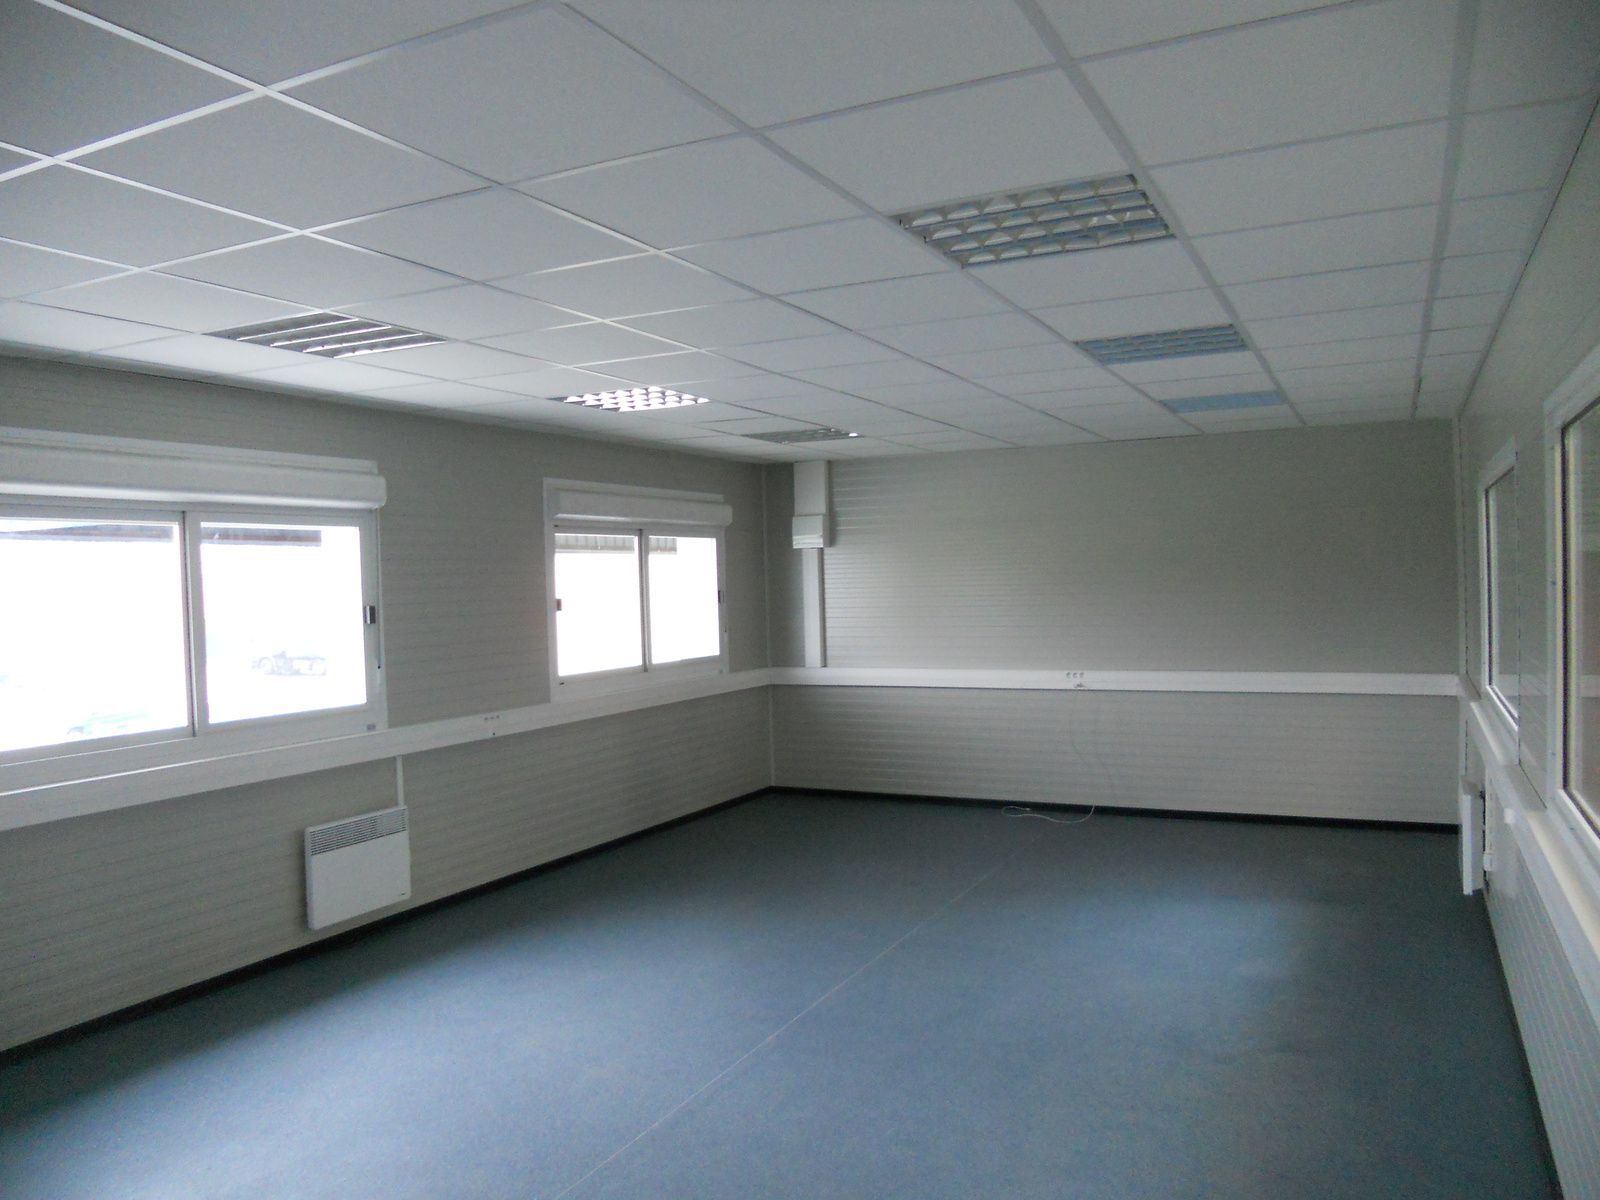 AMENAGEMENT INDUSTRIEL - HEXACOMB - SUITE ET FIN